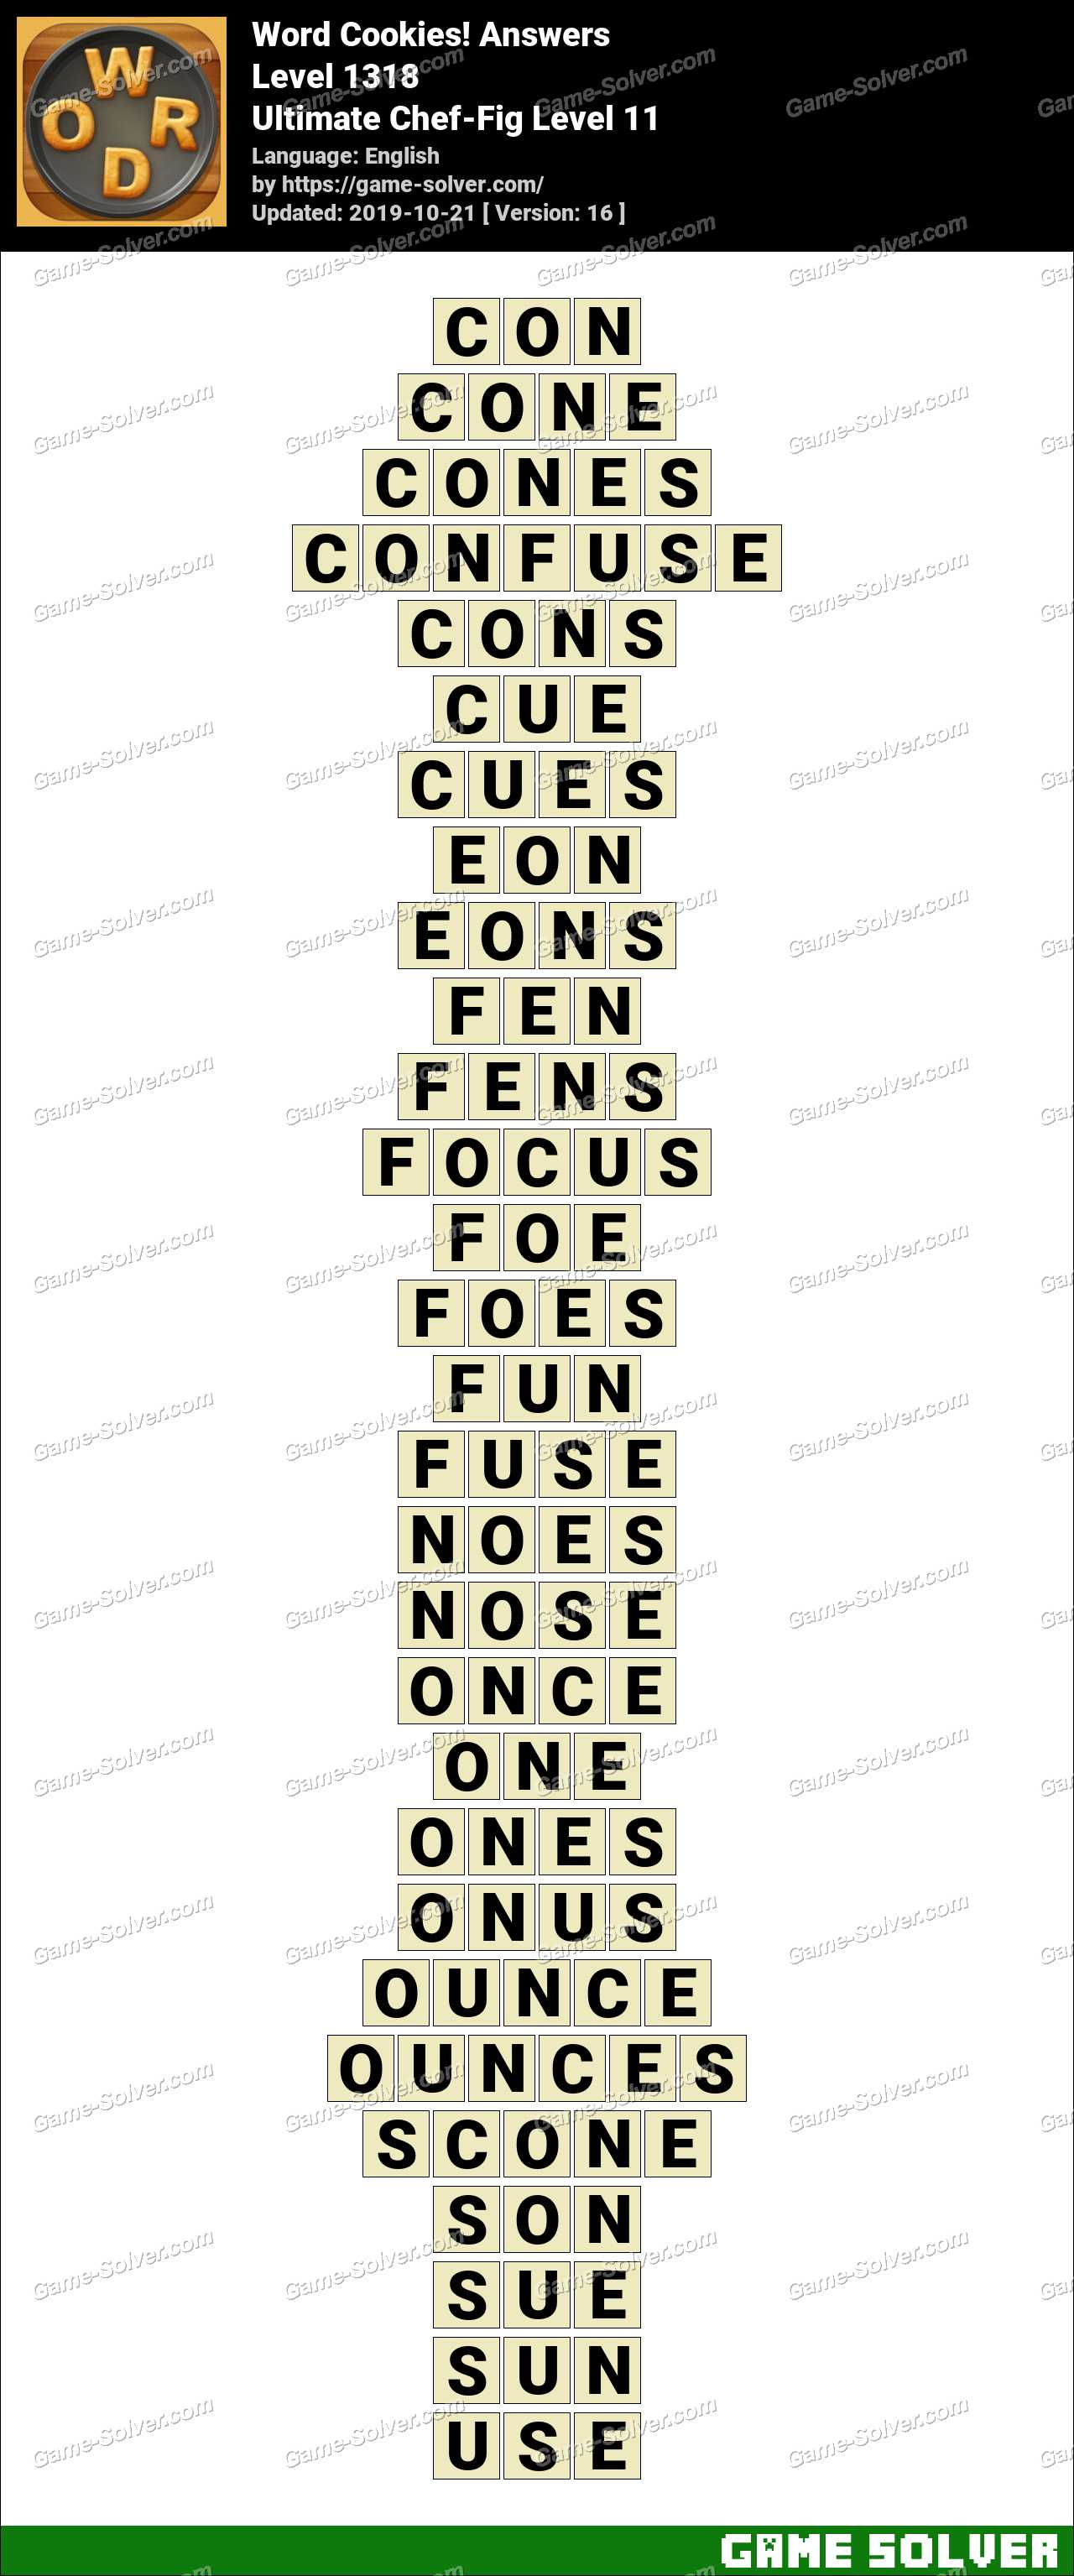 Word Cookies Ultimate Chef-Fig Level 11 Answers